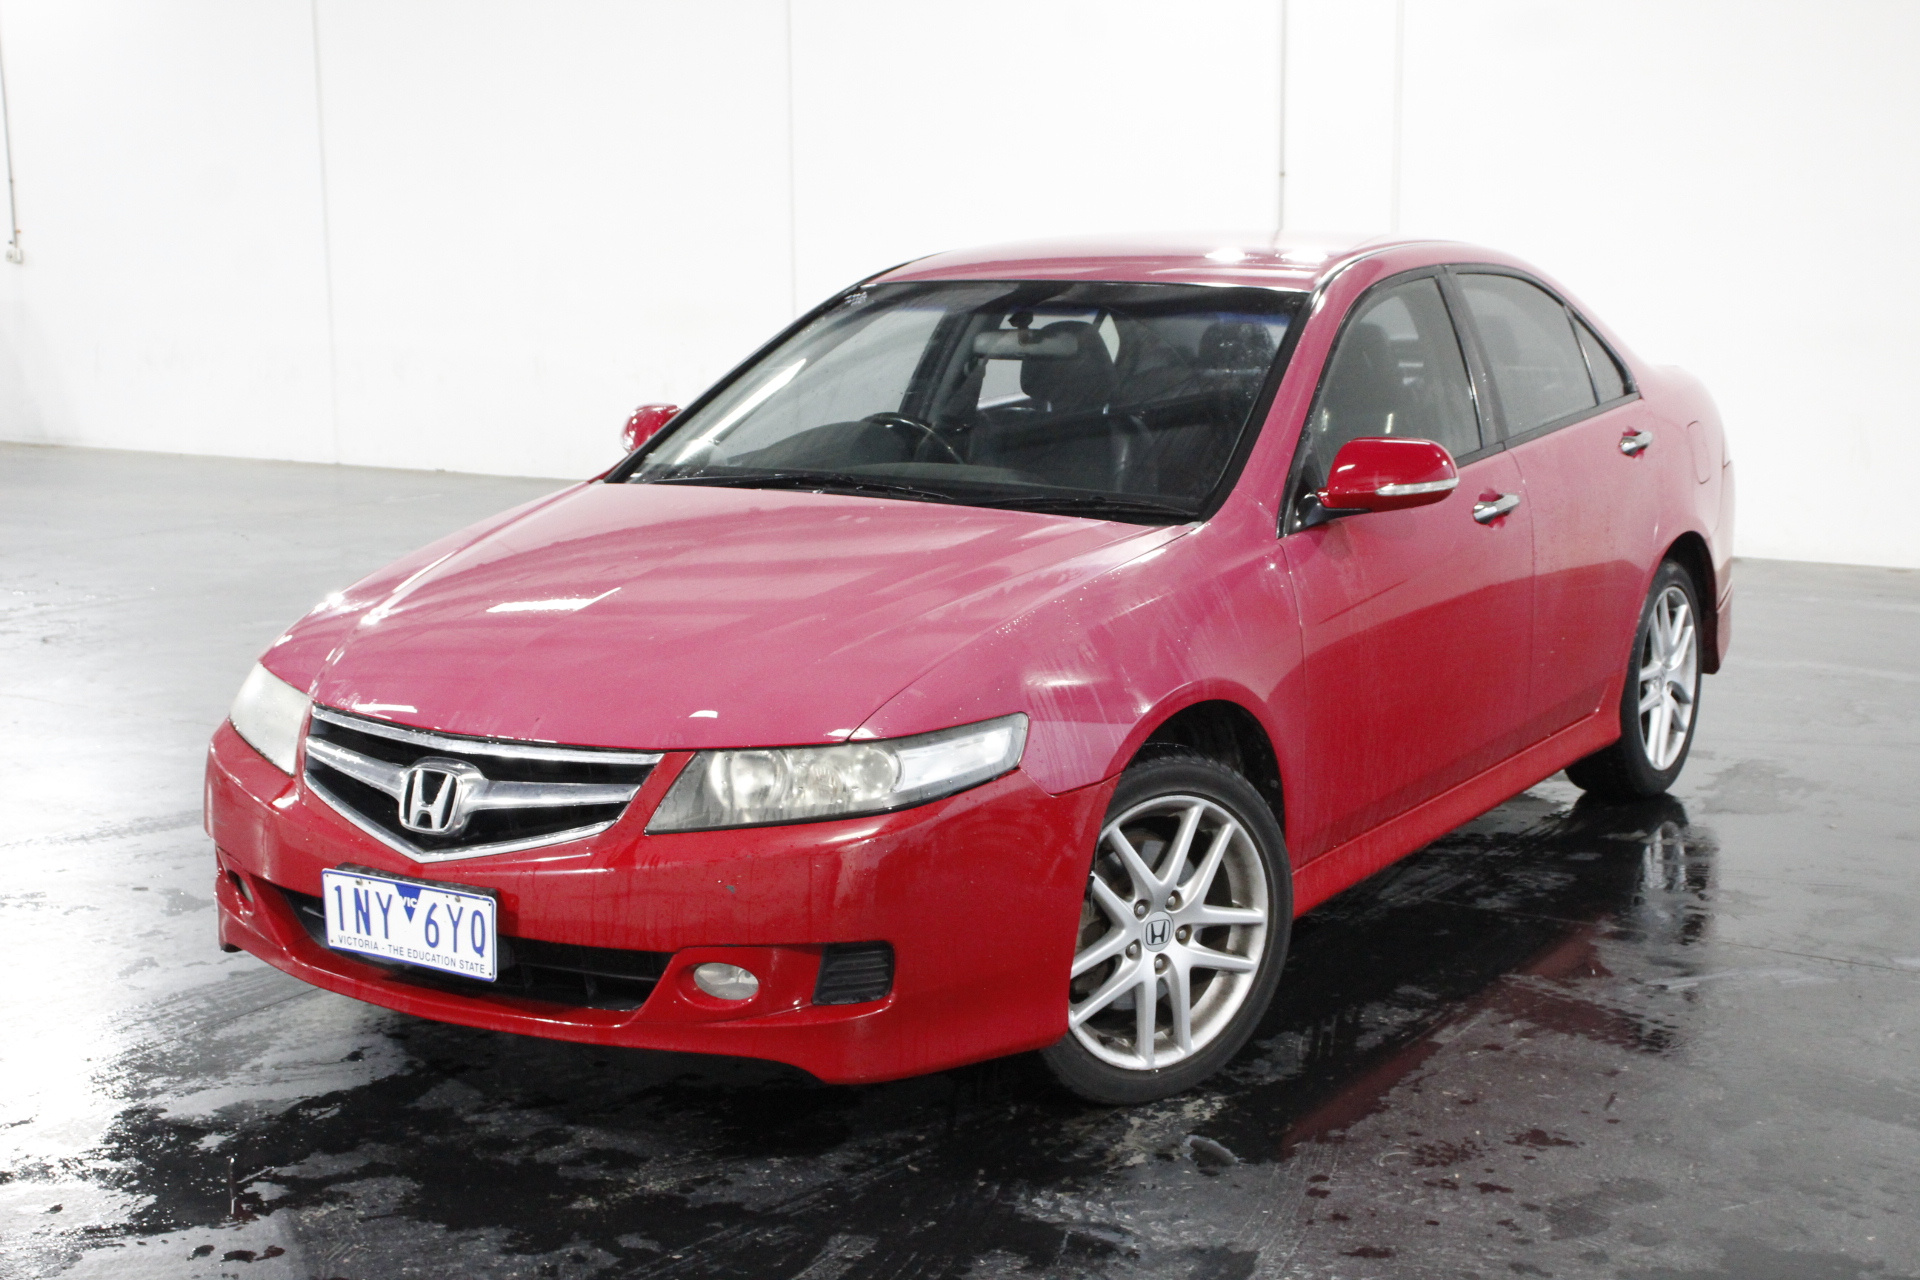 2006 Honda Accord EURO SPORT 7th Gen Automatic Sedan